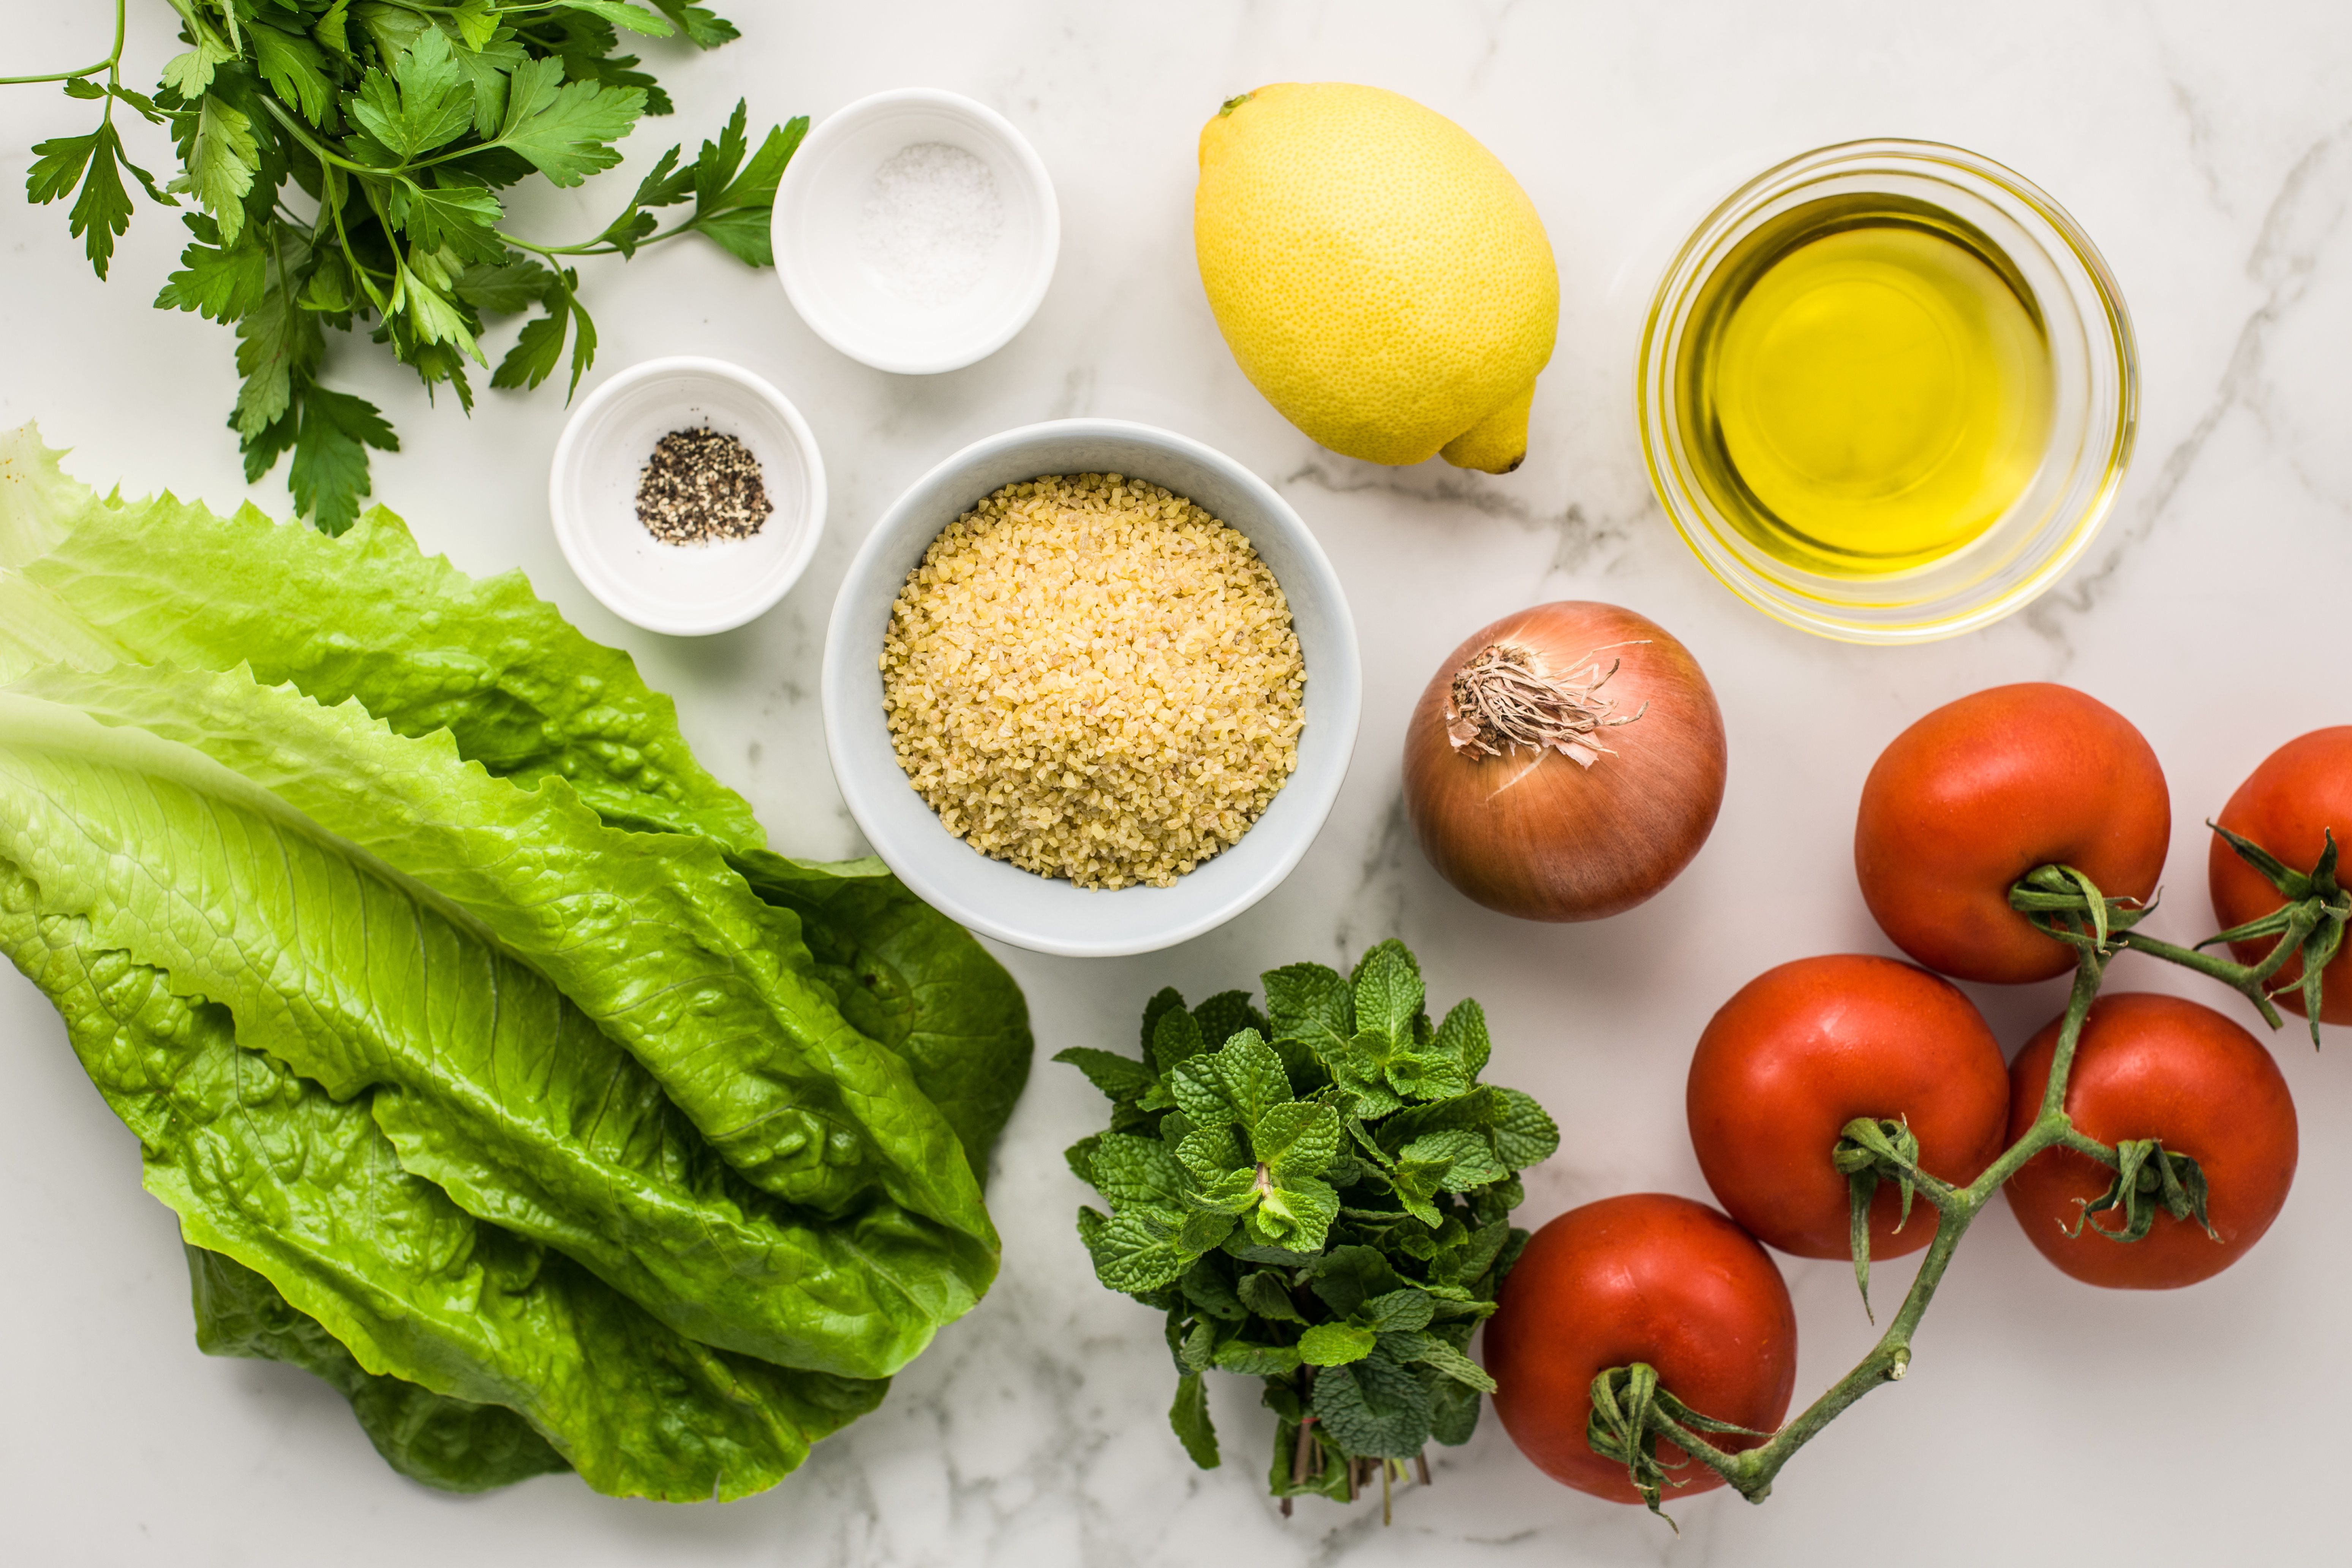 Ingredients for tabouleh wheat salad